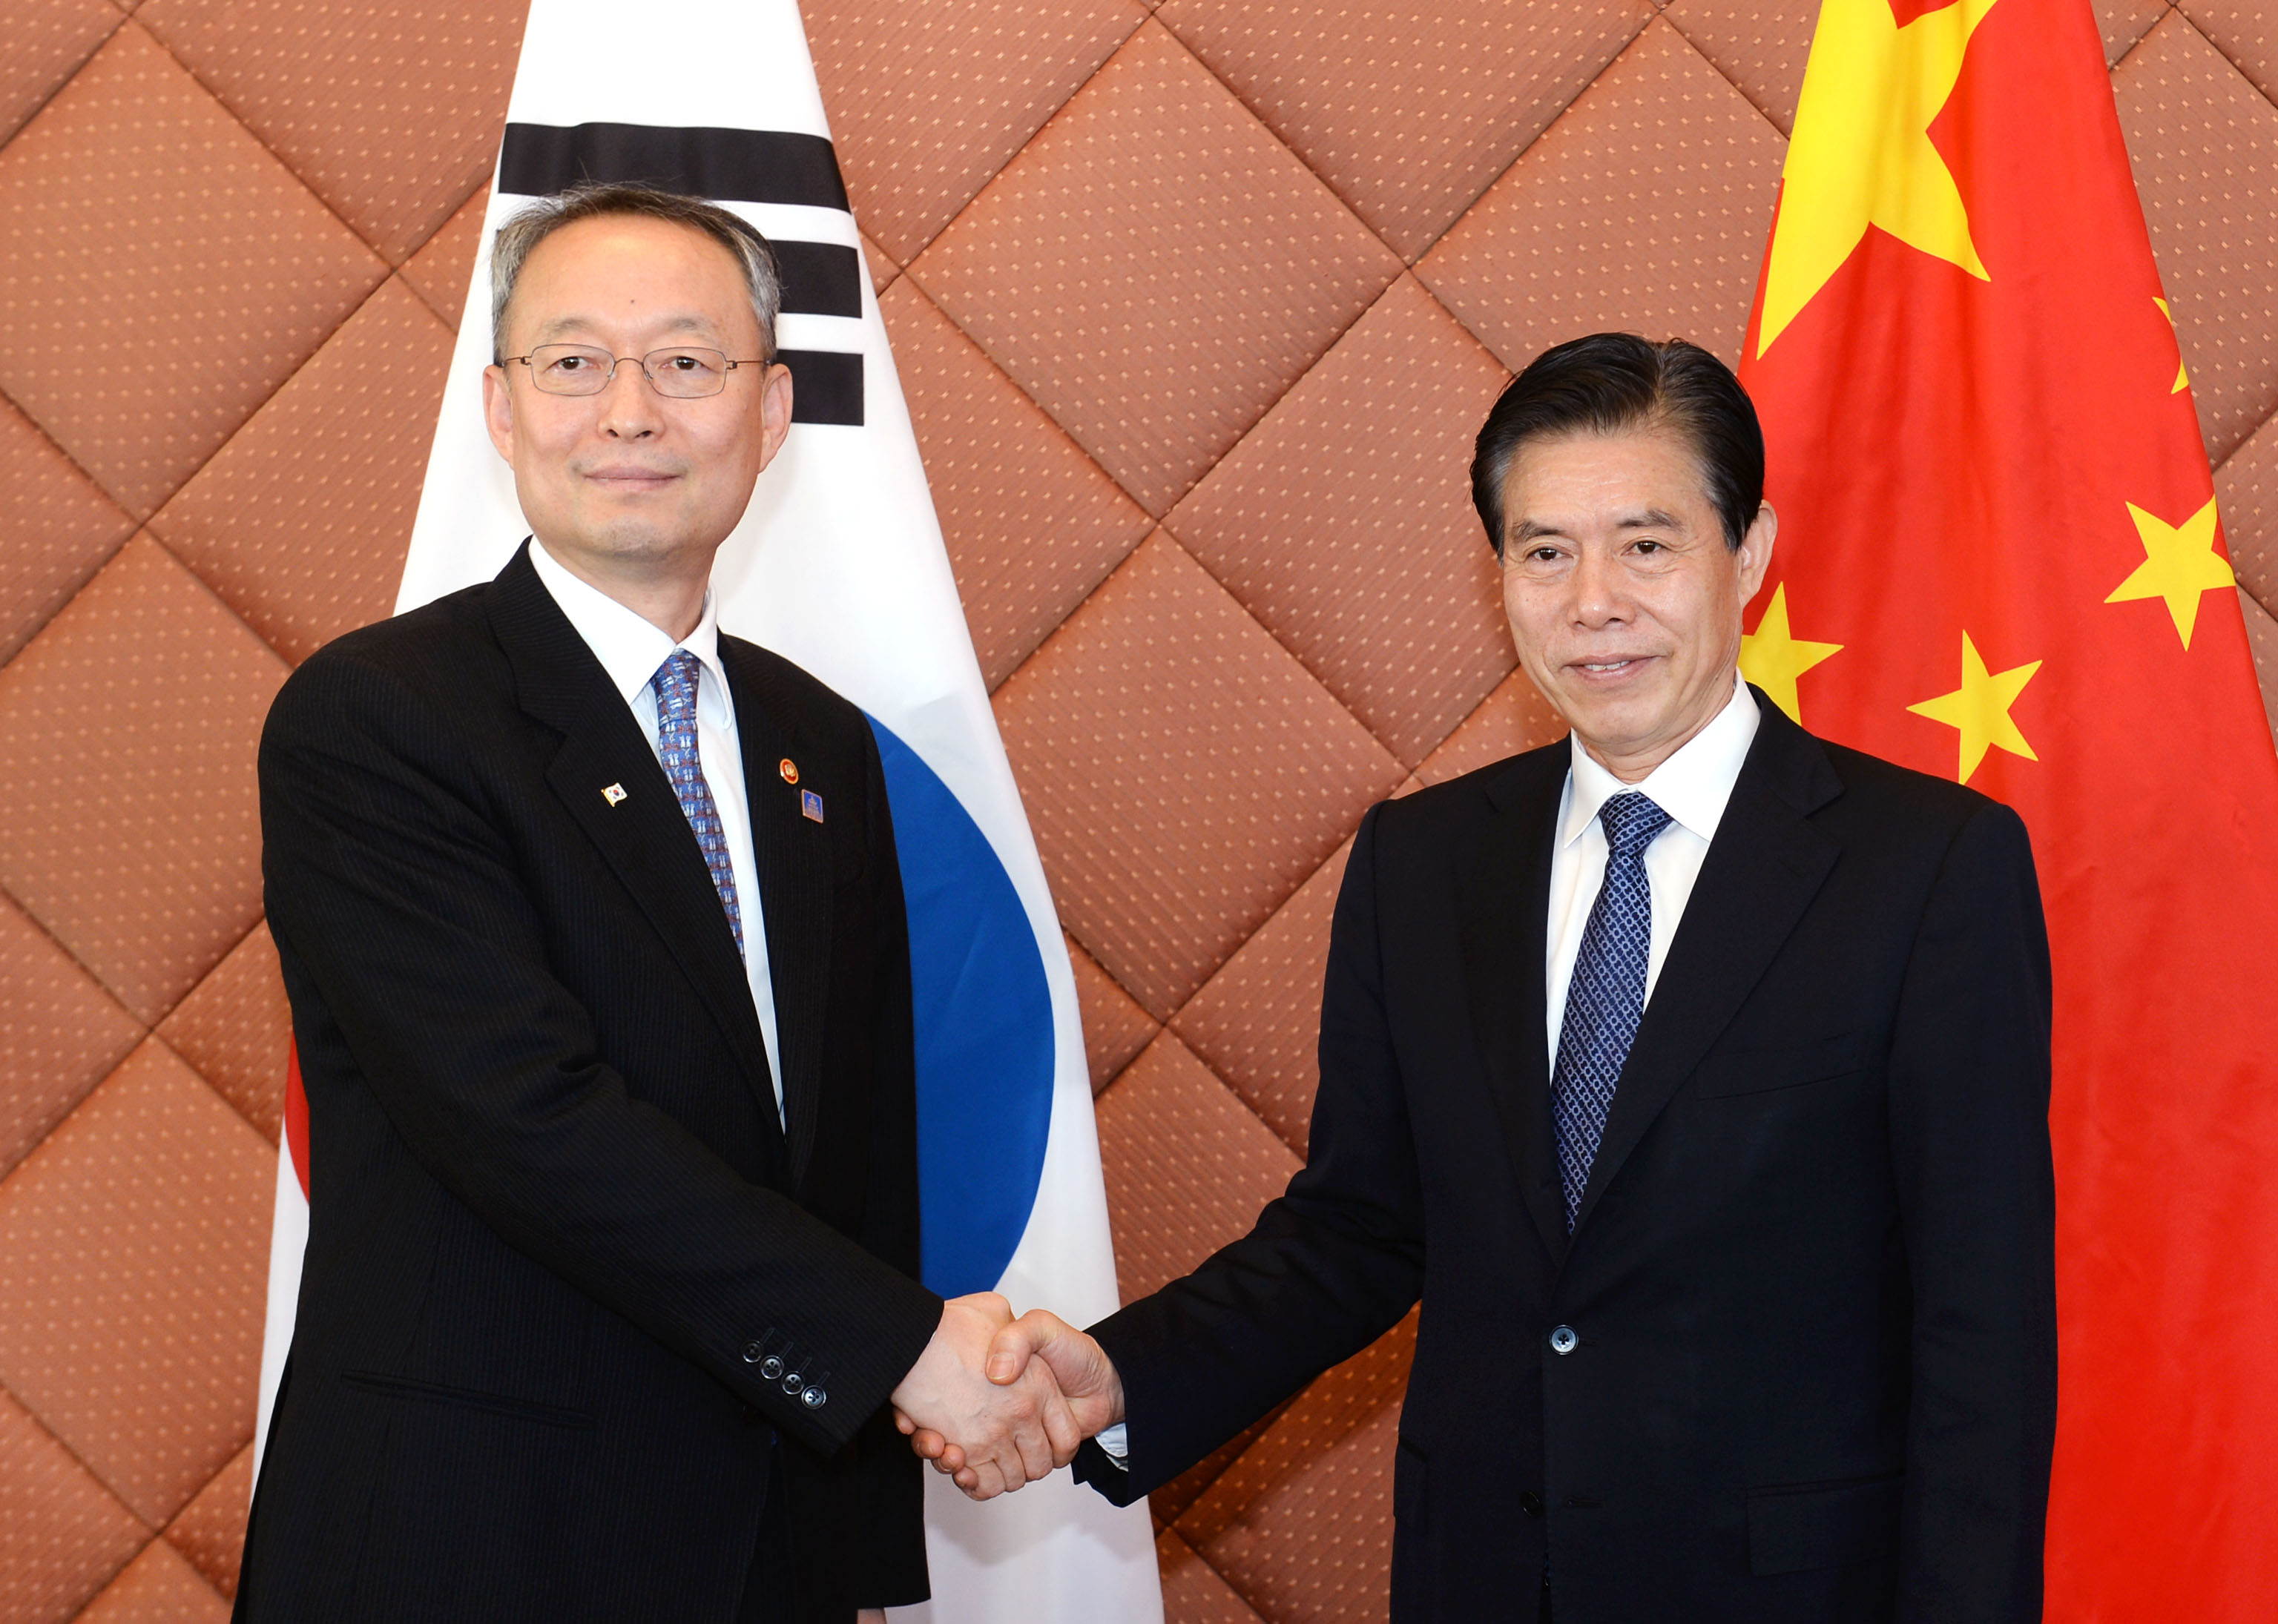 Minister Paik meets with China's Commerce Minister